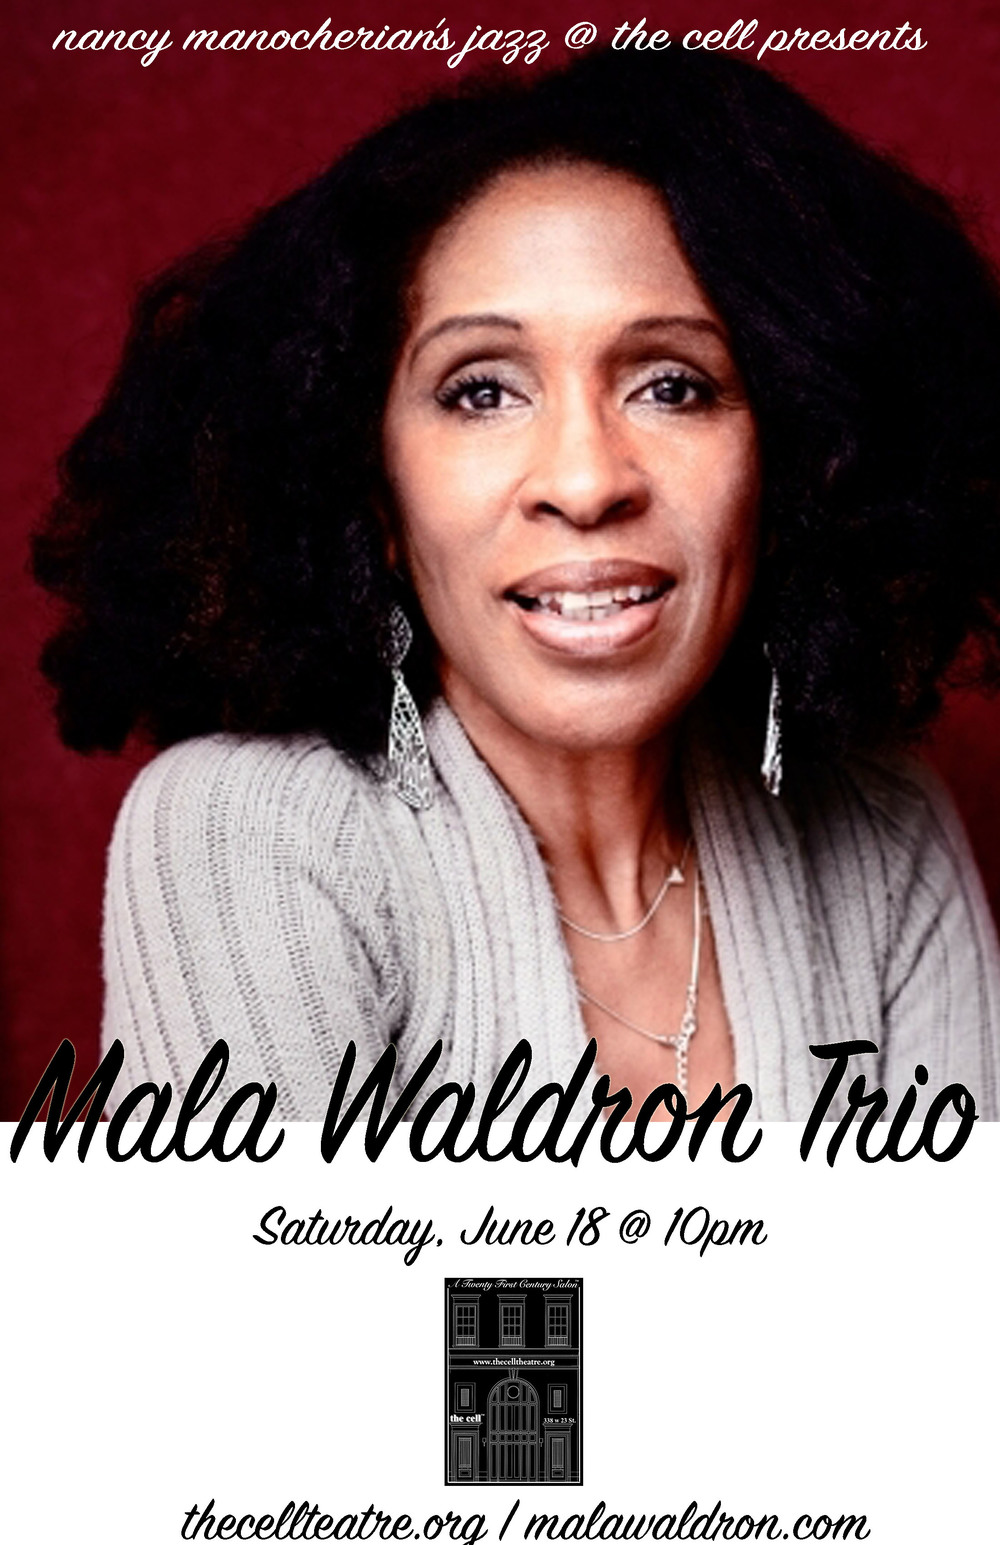 "Vocalist, pianist and composer, Mala Waldron is a native of New York.  Her musical approach reflects the varied styles of music she was exposed to as a youngster including jazz, soul, calypso and classical. She's the daughter of renown jazz pianist/composer Mal Waldron and credits both parents (her mother, Elaine, being a fine jazz pianist and vocalist) with giving her a solid and varied foundation in jazz. Mala has enjoyed performing for audiences all over the world including, France, Italy, Japan, China and Russia.   Her recorded works include, ""He's My Father,"" a duo project with her father and ""Lullabye,"" her debut CD as a leader & tribute to Godmother, Billie Holiday.  Waldron's first U.S. release, ""Always There,"" was voted one of Jazz USA's Top CDs of the year.   Her latest CD, ""Deep Resonance,"" was launched with a CD Release Party at NYC's Club Bonafide and is already receiving wonderful early reviews.   ""When you hear Mala Waldron's soulful voice ... you realize that you are experiencing something very special, for Waldron is not only an accomplished vocalist and songwriter,  but also a fine pianist who hits the keys with great precision, bringing various musical influences into the jazz realm."" -- Ernest Barteldes, All About Jazz ""She sings in a silken contralto with a whispering vibrato so apt for the sensuous, soulful songs that she composes ... a perfectly shaded mixture of power and melancholic sensitivity""  -- Jazzdagama.com"